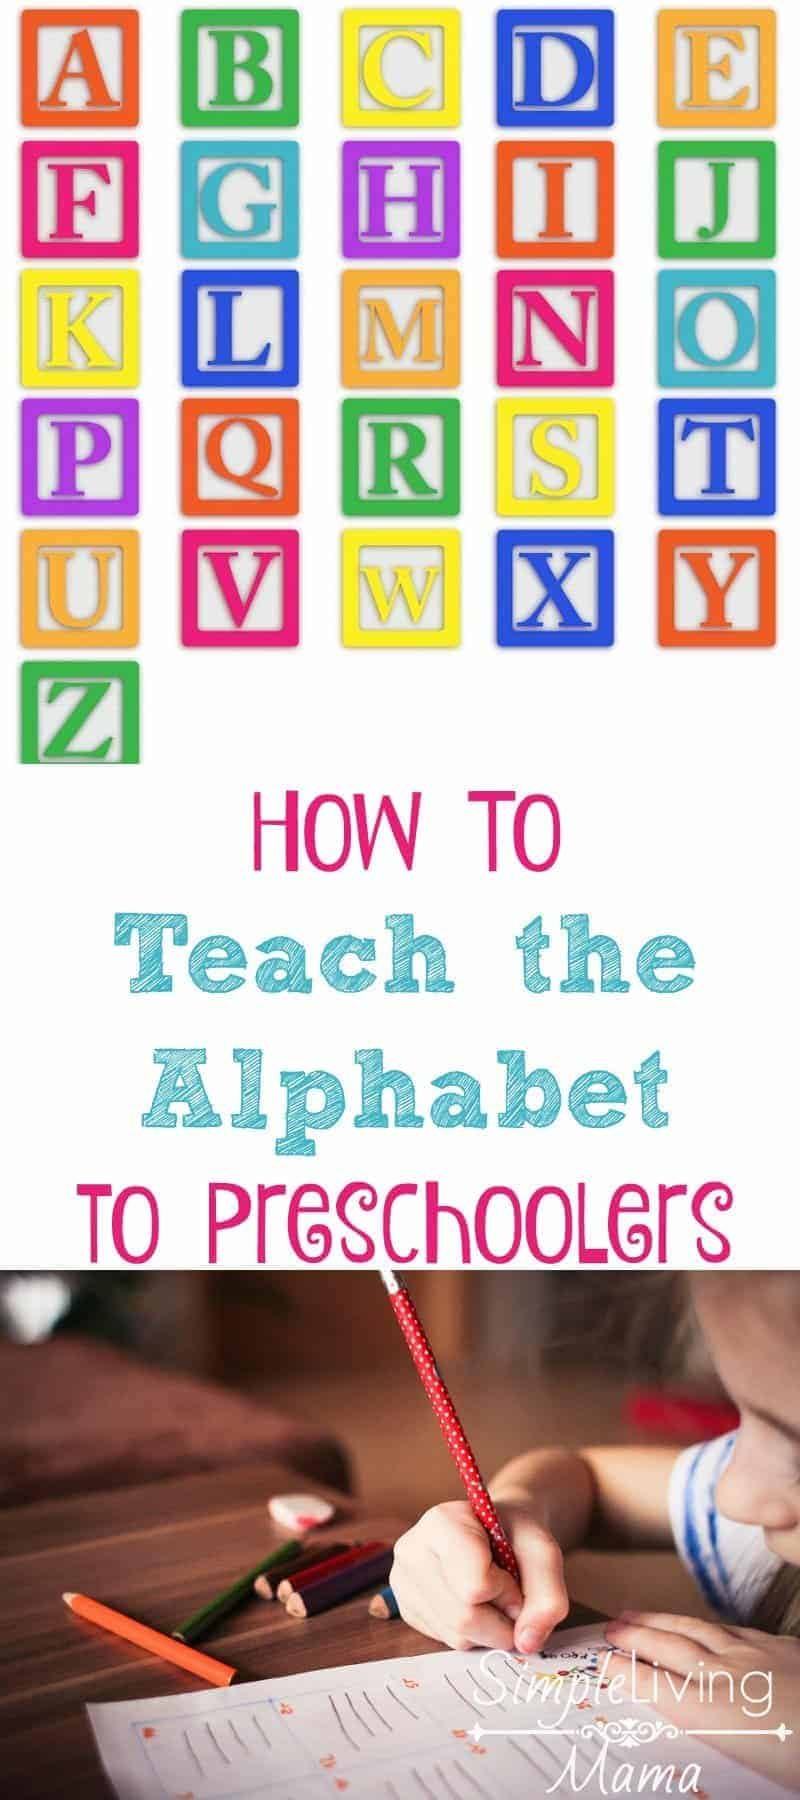 How to teach the alphabet to preschoolers in a fun and engaging way!